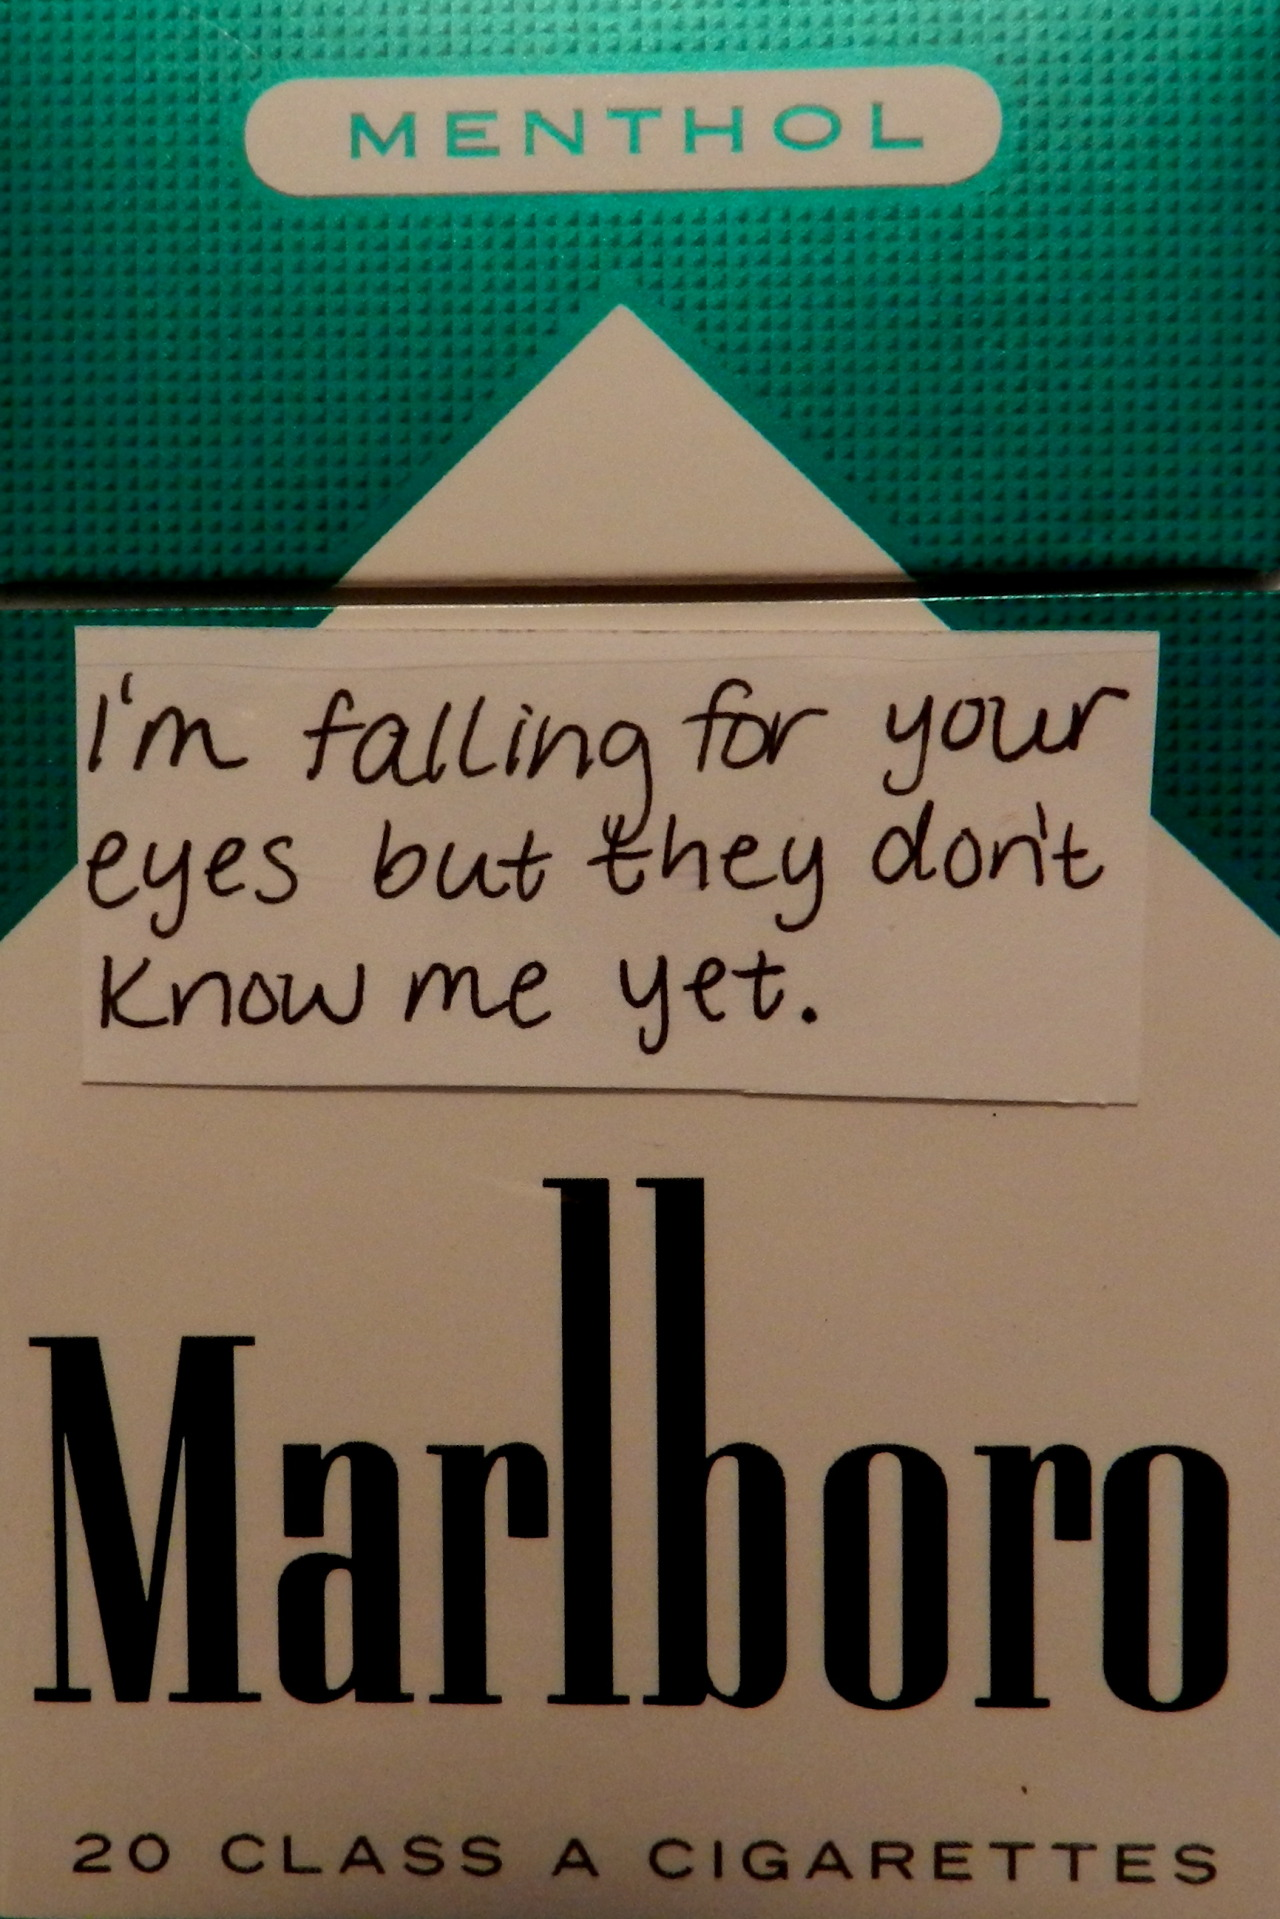 cigarette-memories:  I'm falling for your eyes but they don't know me yet.